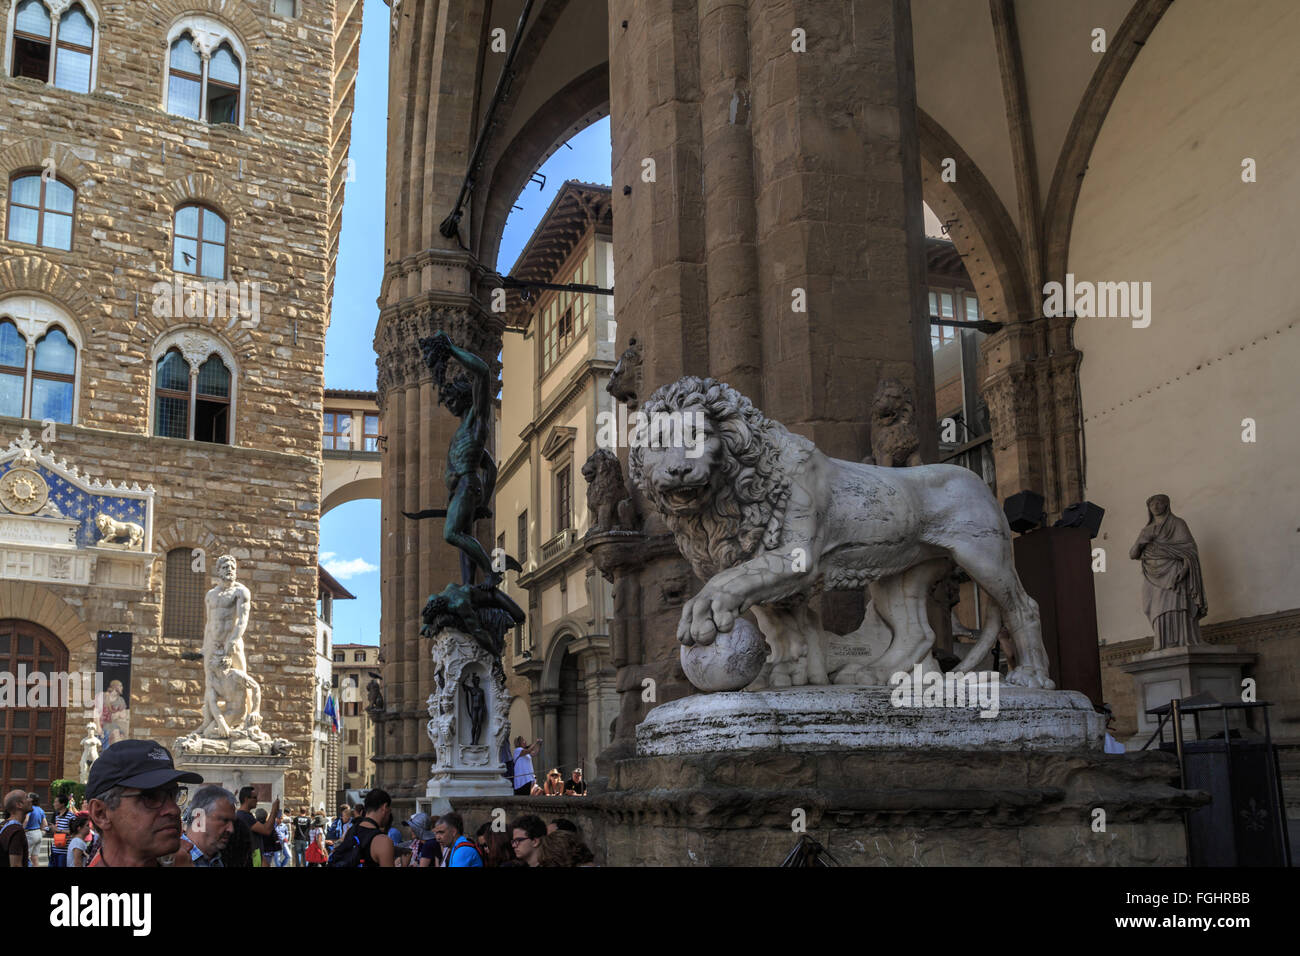 FLORENCE, ITALY - SEPTEMBER 22, 2015 : View of Lion sculpture at Piazza Della Signoria in Florence, with people - Stock Image